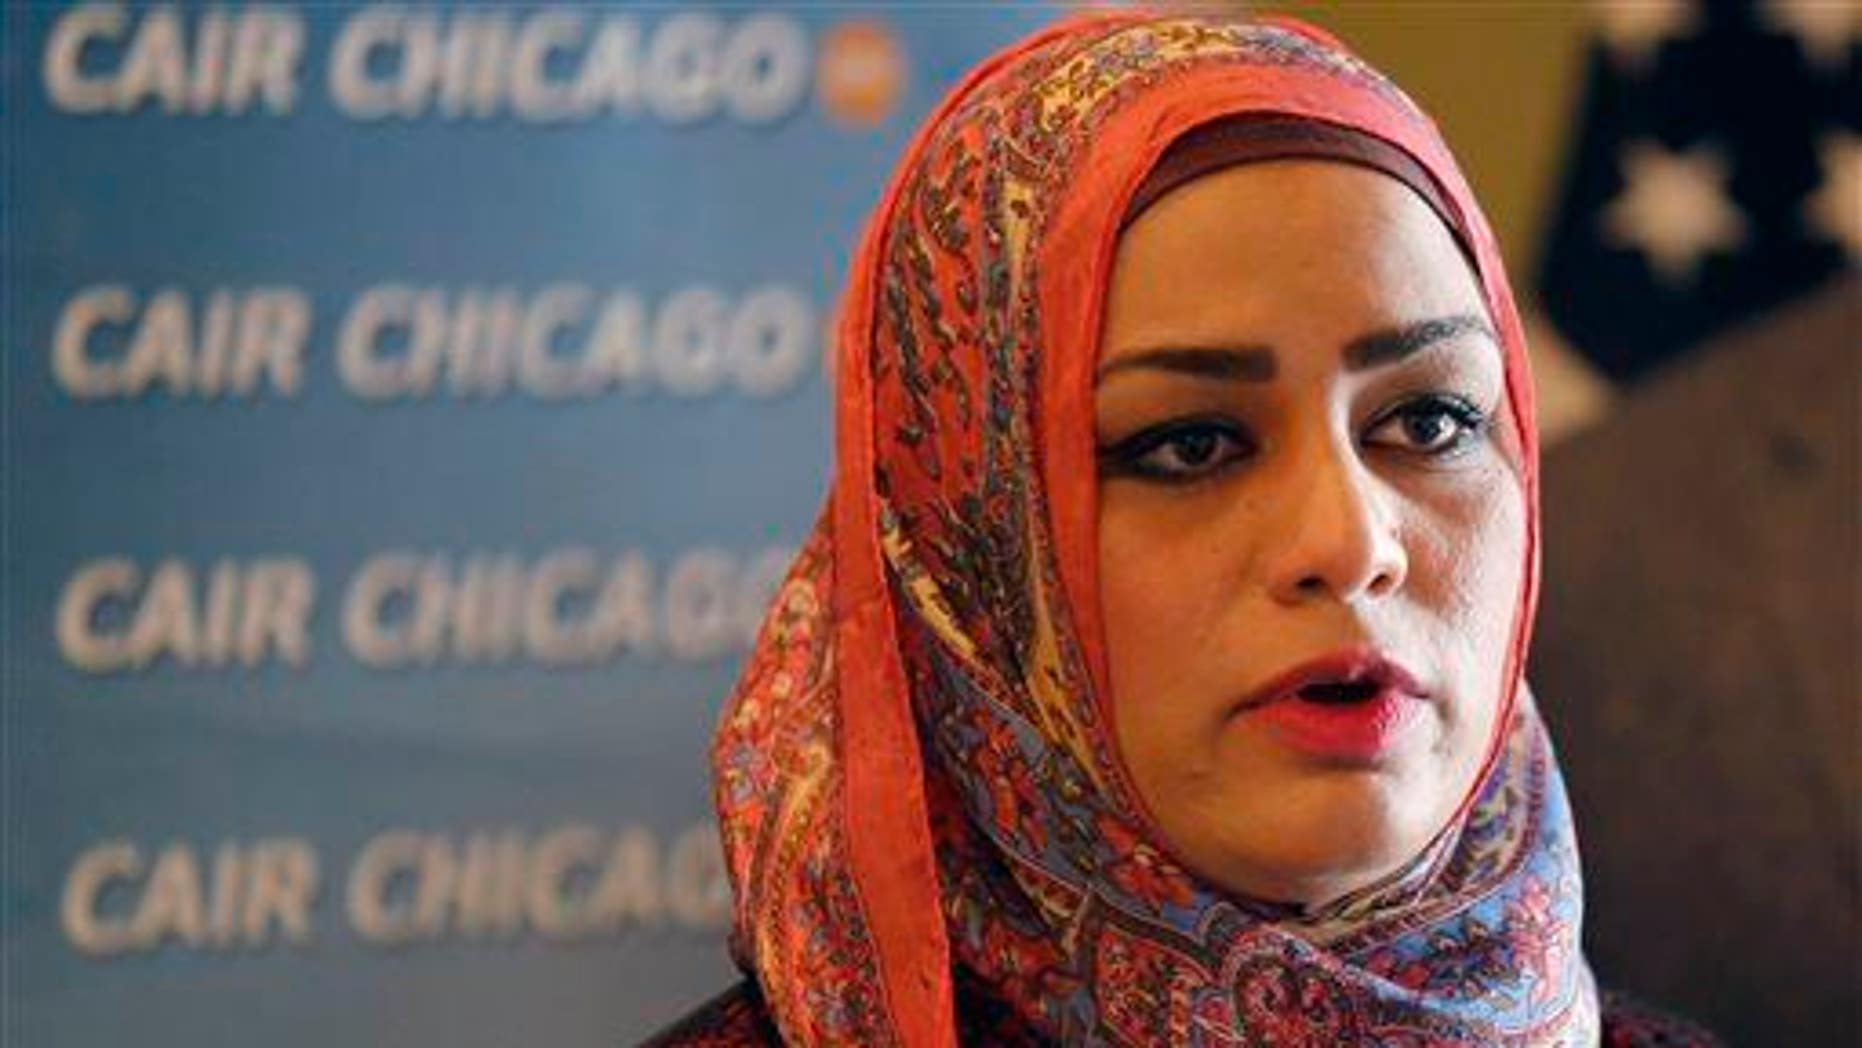 Muslim chaplain Tahera Ahmad responds to a question during a news conference Wednesday, June 3, 2015, in Chicago.